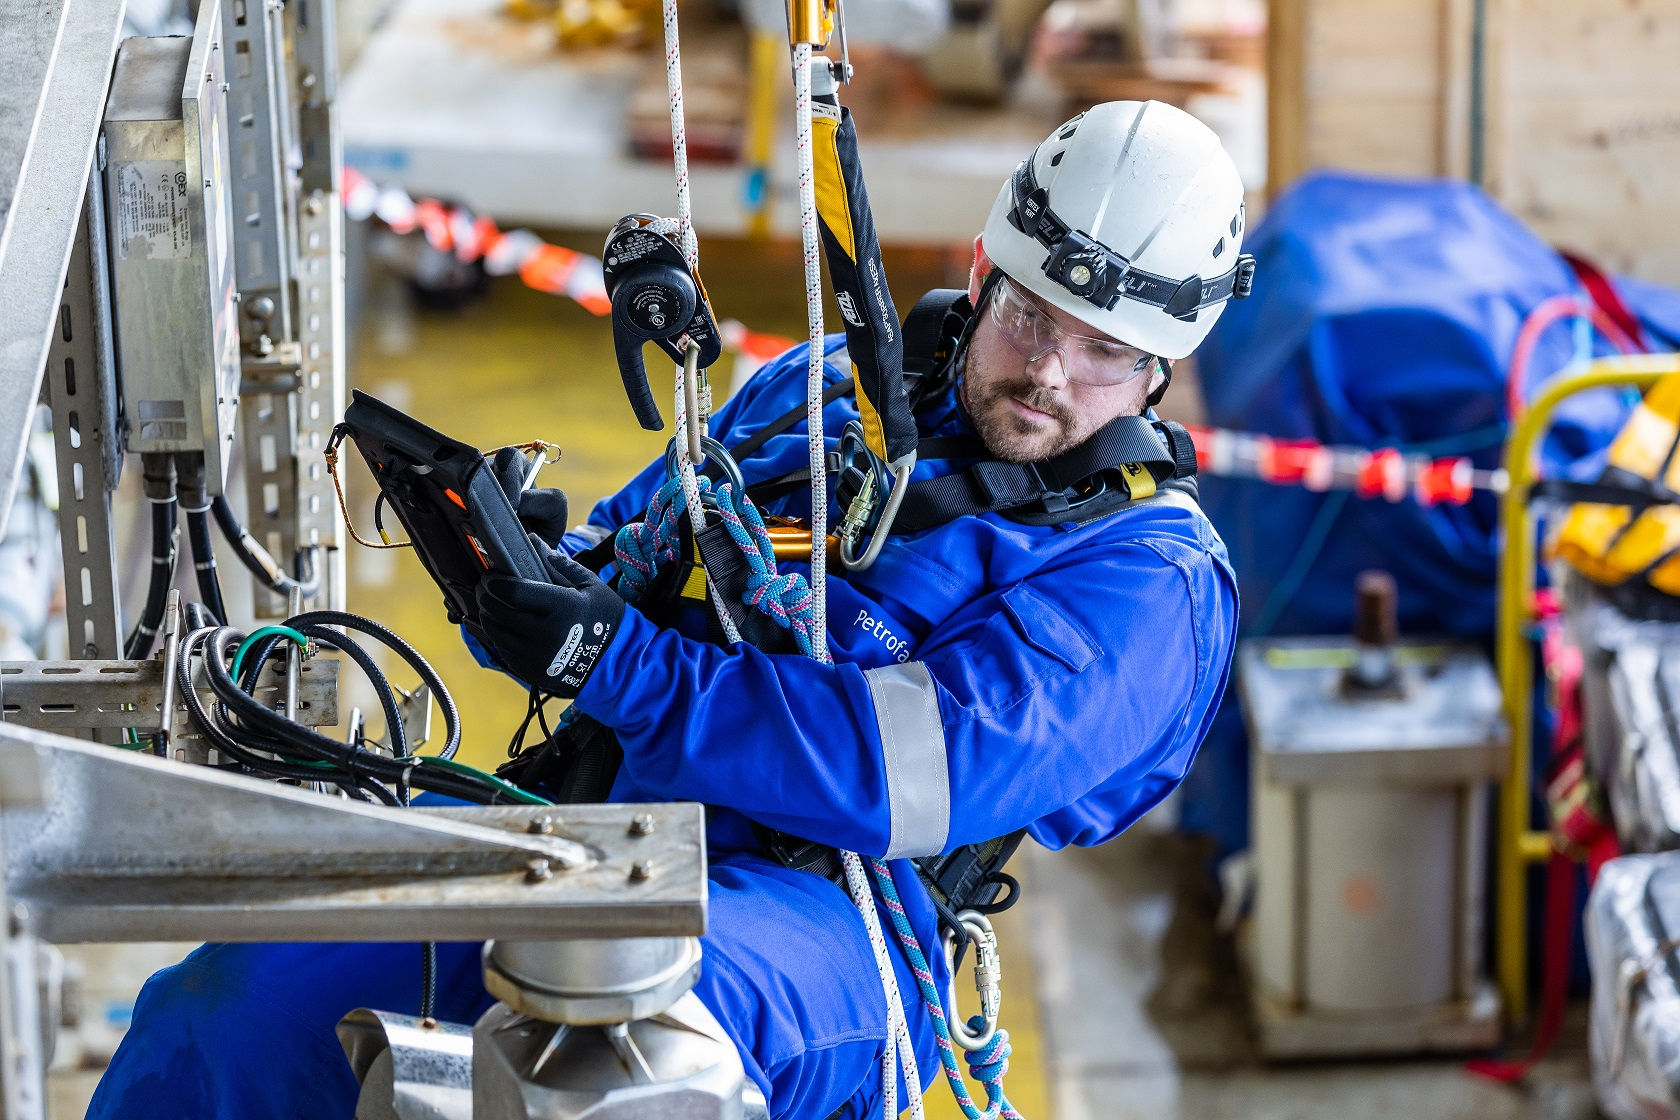 An offshore worker carrying out inspection duties.